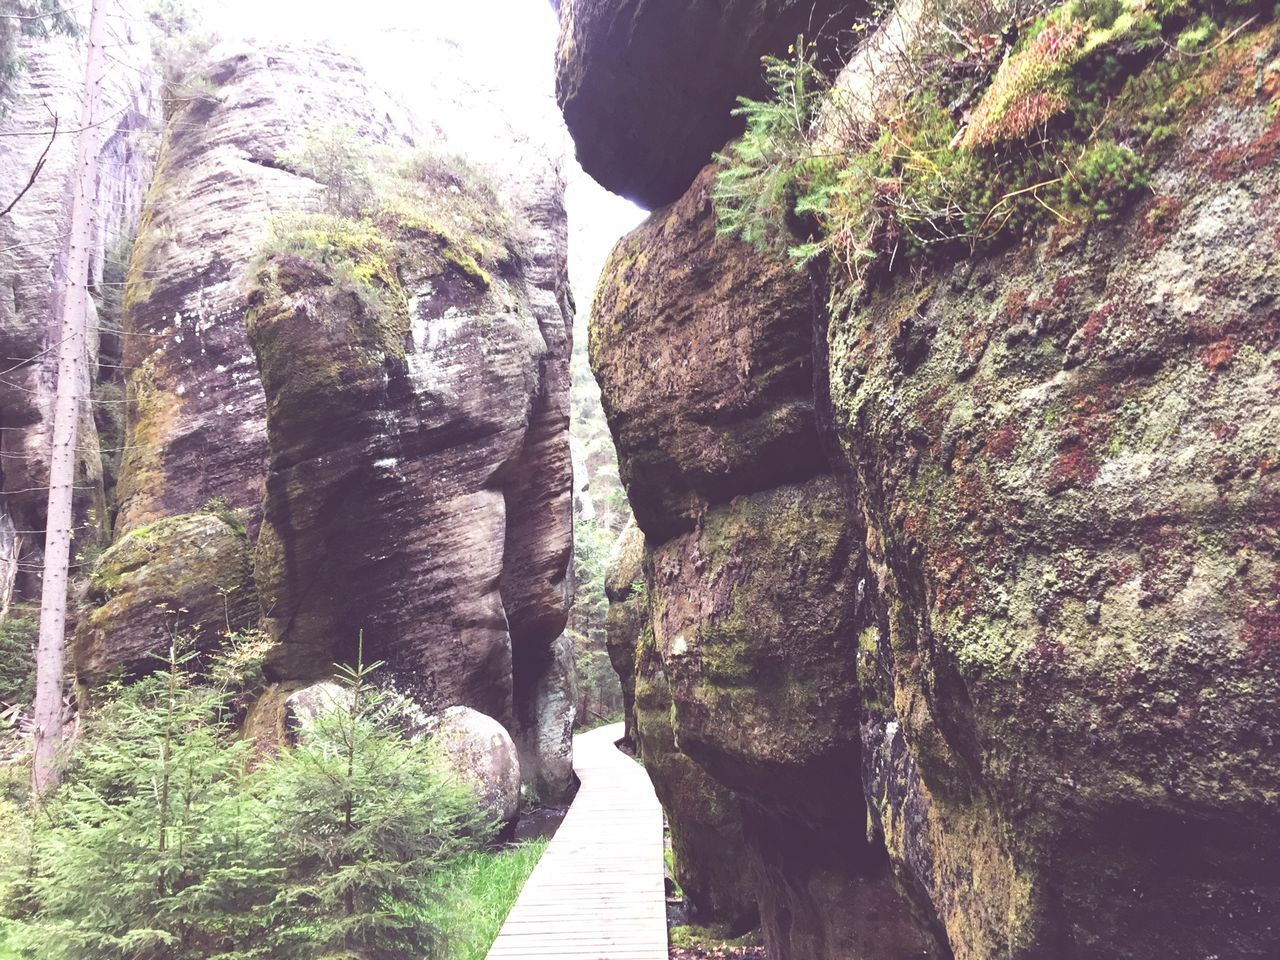 rock - object, rock formation, nature, day, tranquility, no people, outdoors, beauty in nature